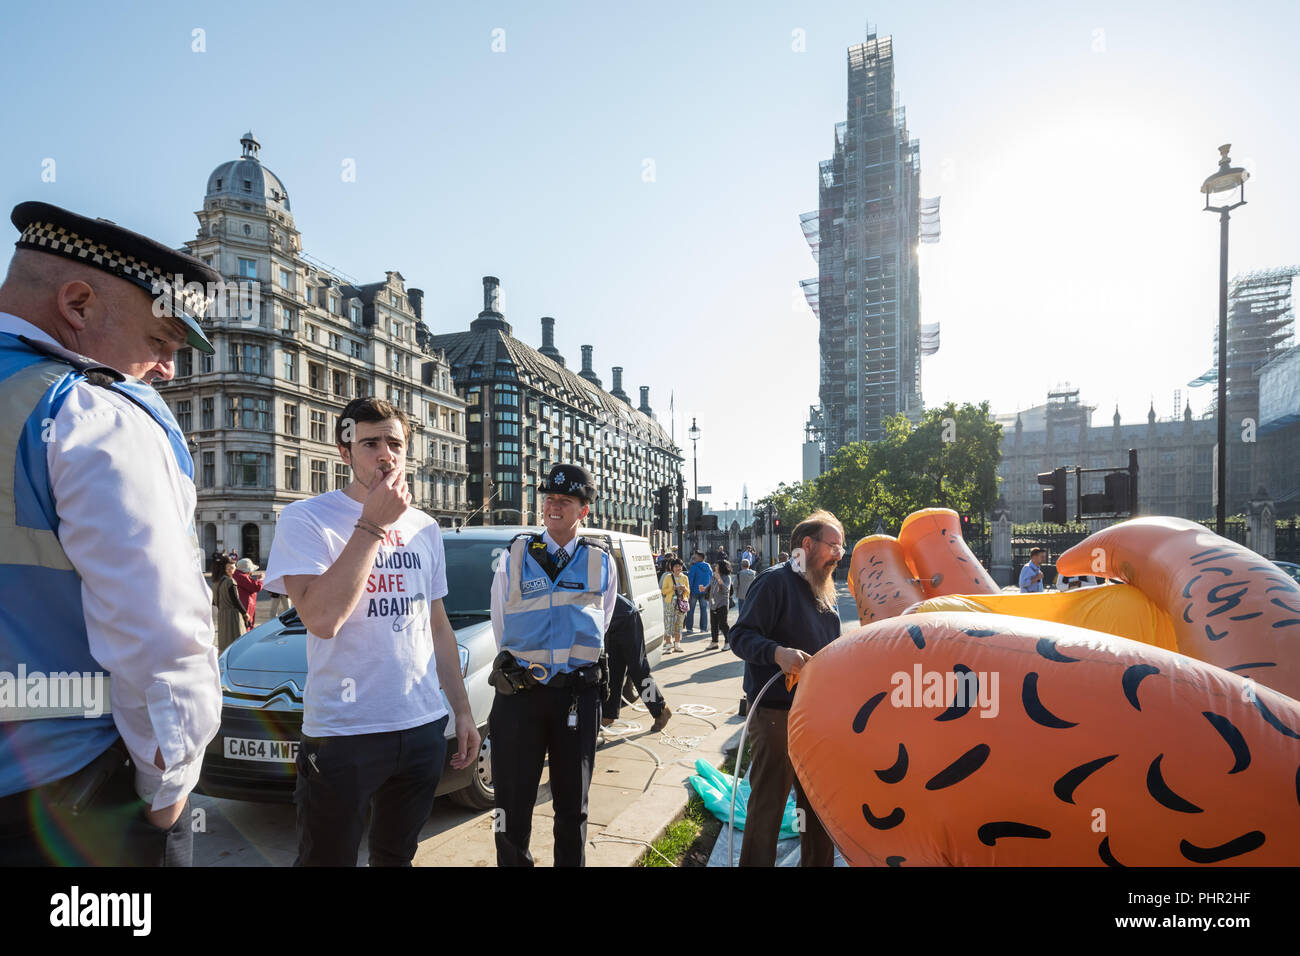 Giant blimp of London Mayor Sadiq Khan wearing a yellow bikini is inflated ready to fly over Parliament square in London, UK. - Stock Image